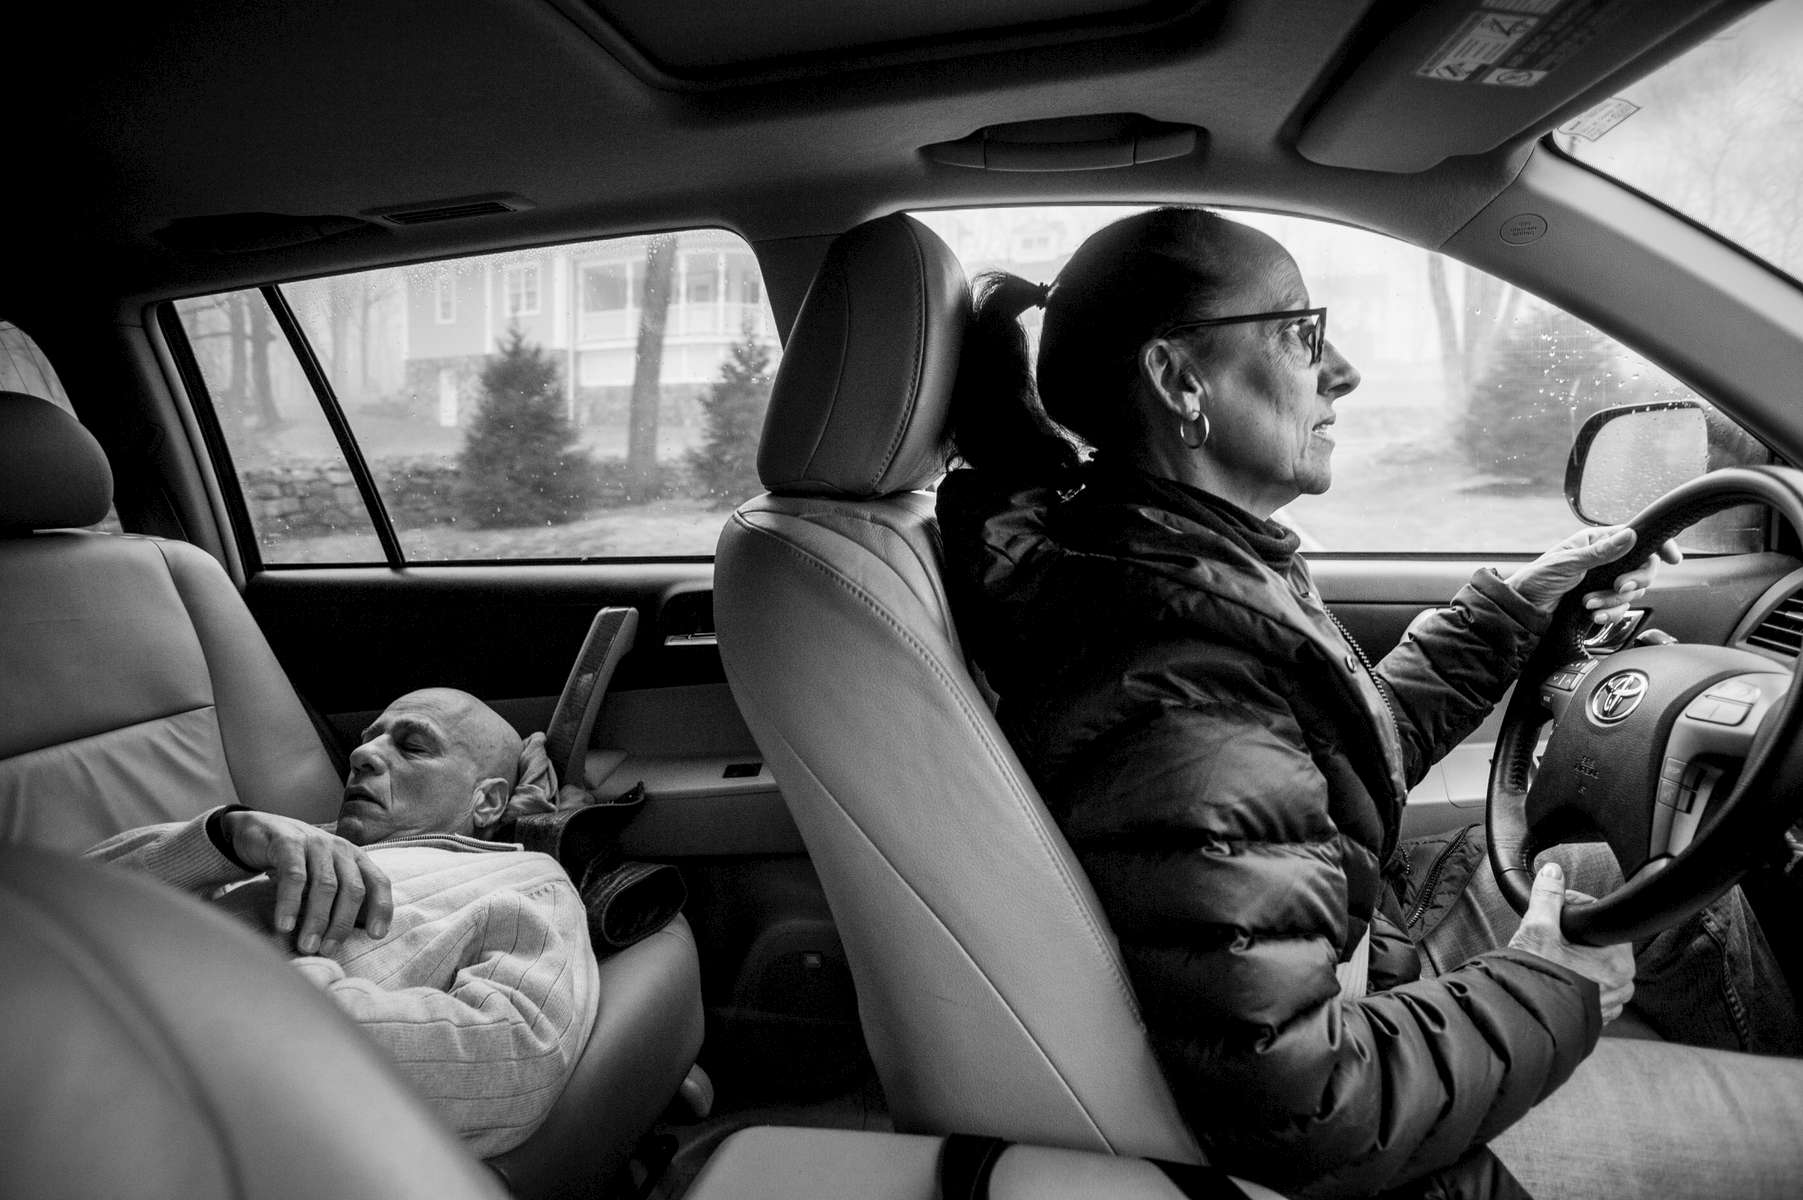 The drive to chemotherapy treatment took half an hour, and Mom and Dad would take turns, resting and driving, depending on whose getting treatment that day.